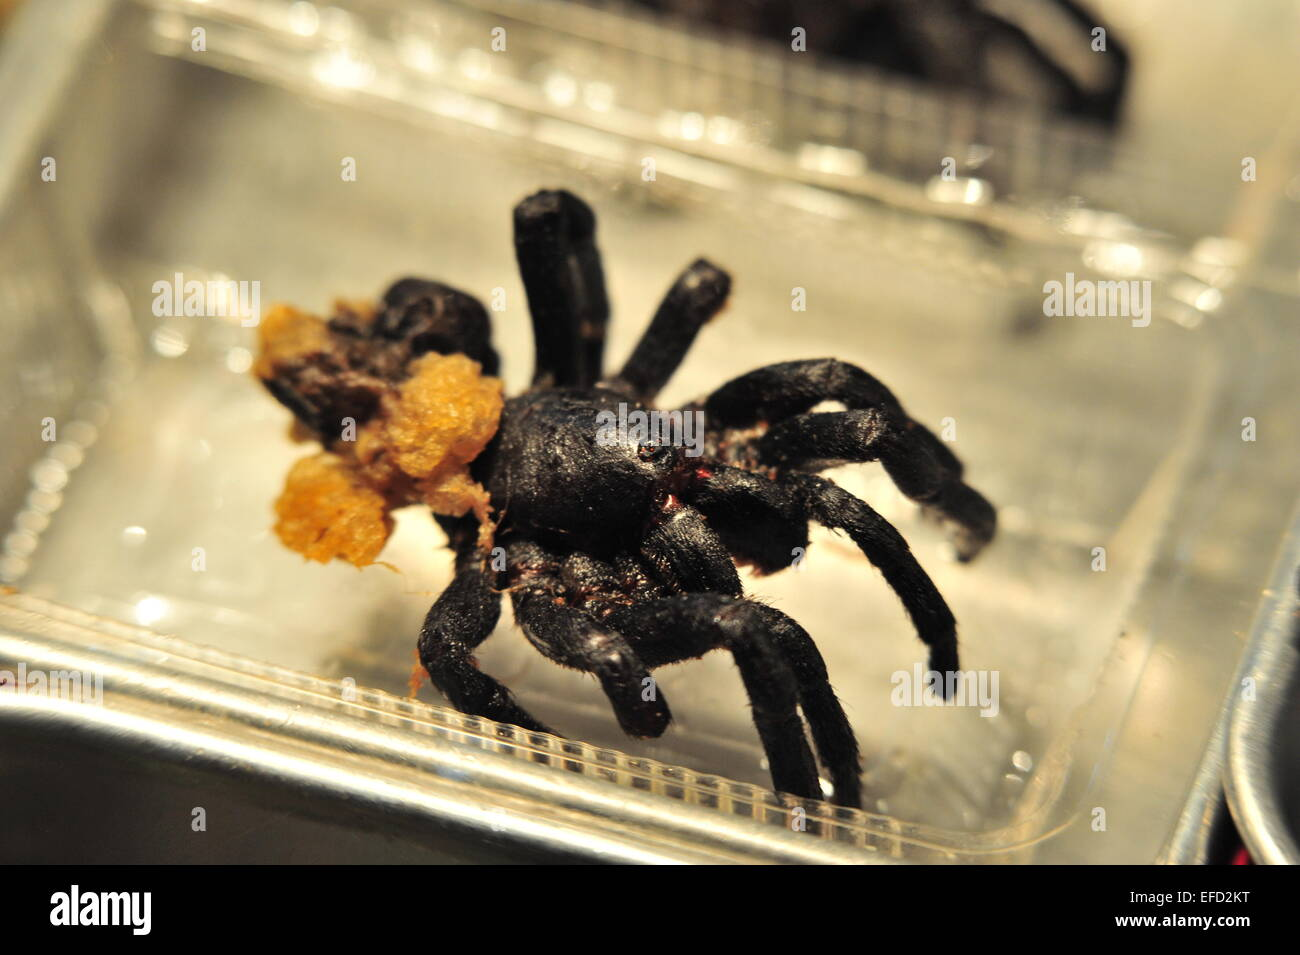 Spider at Nightmarket, Bangkok, Thailand. - Stock Image